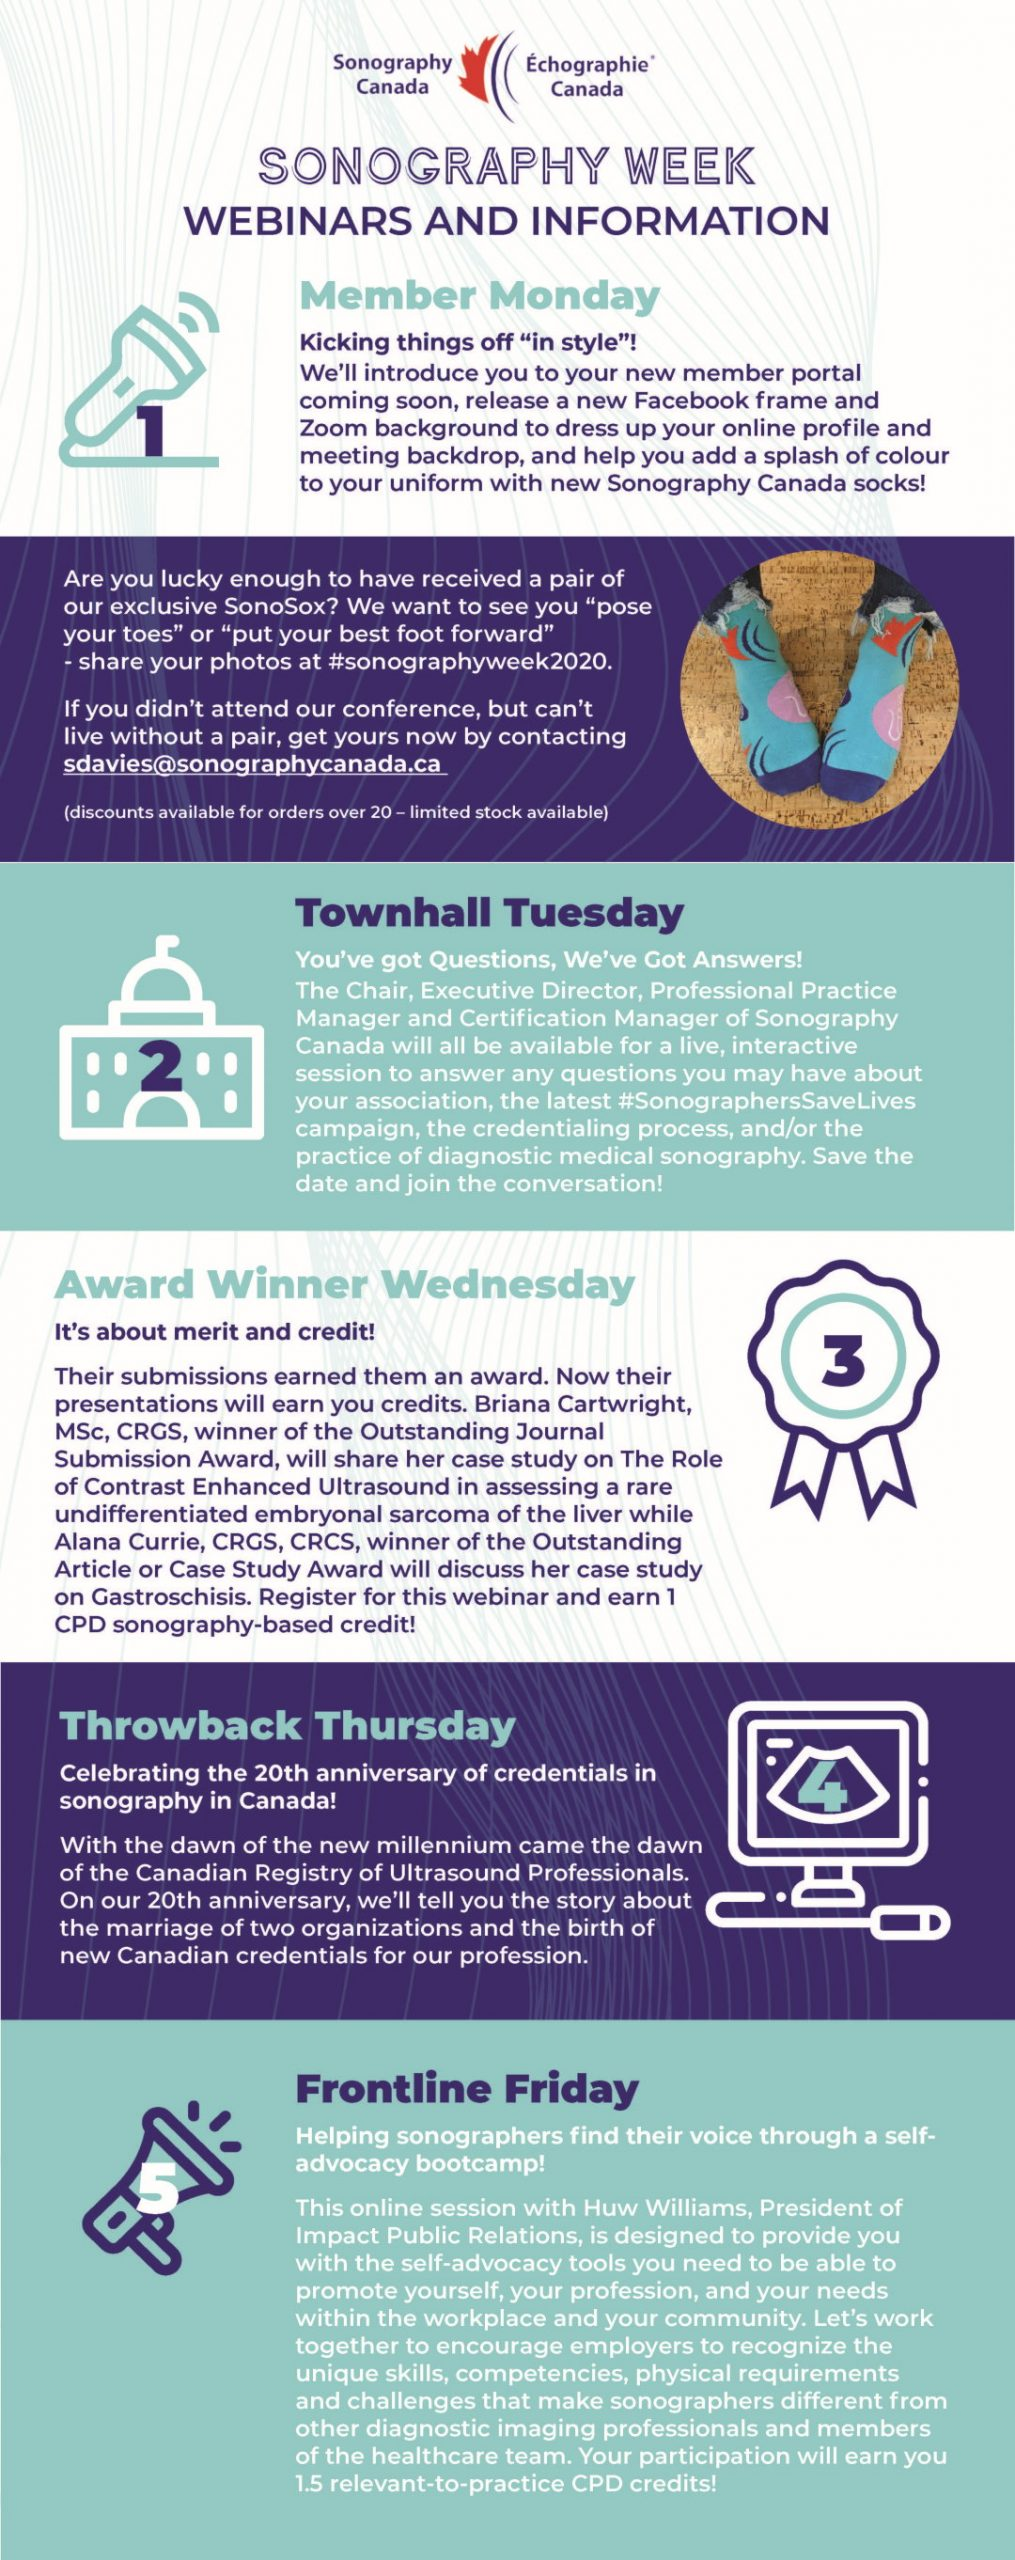 Sonography Week Infographic